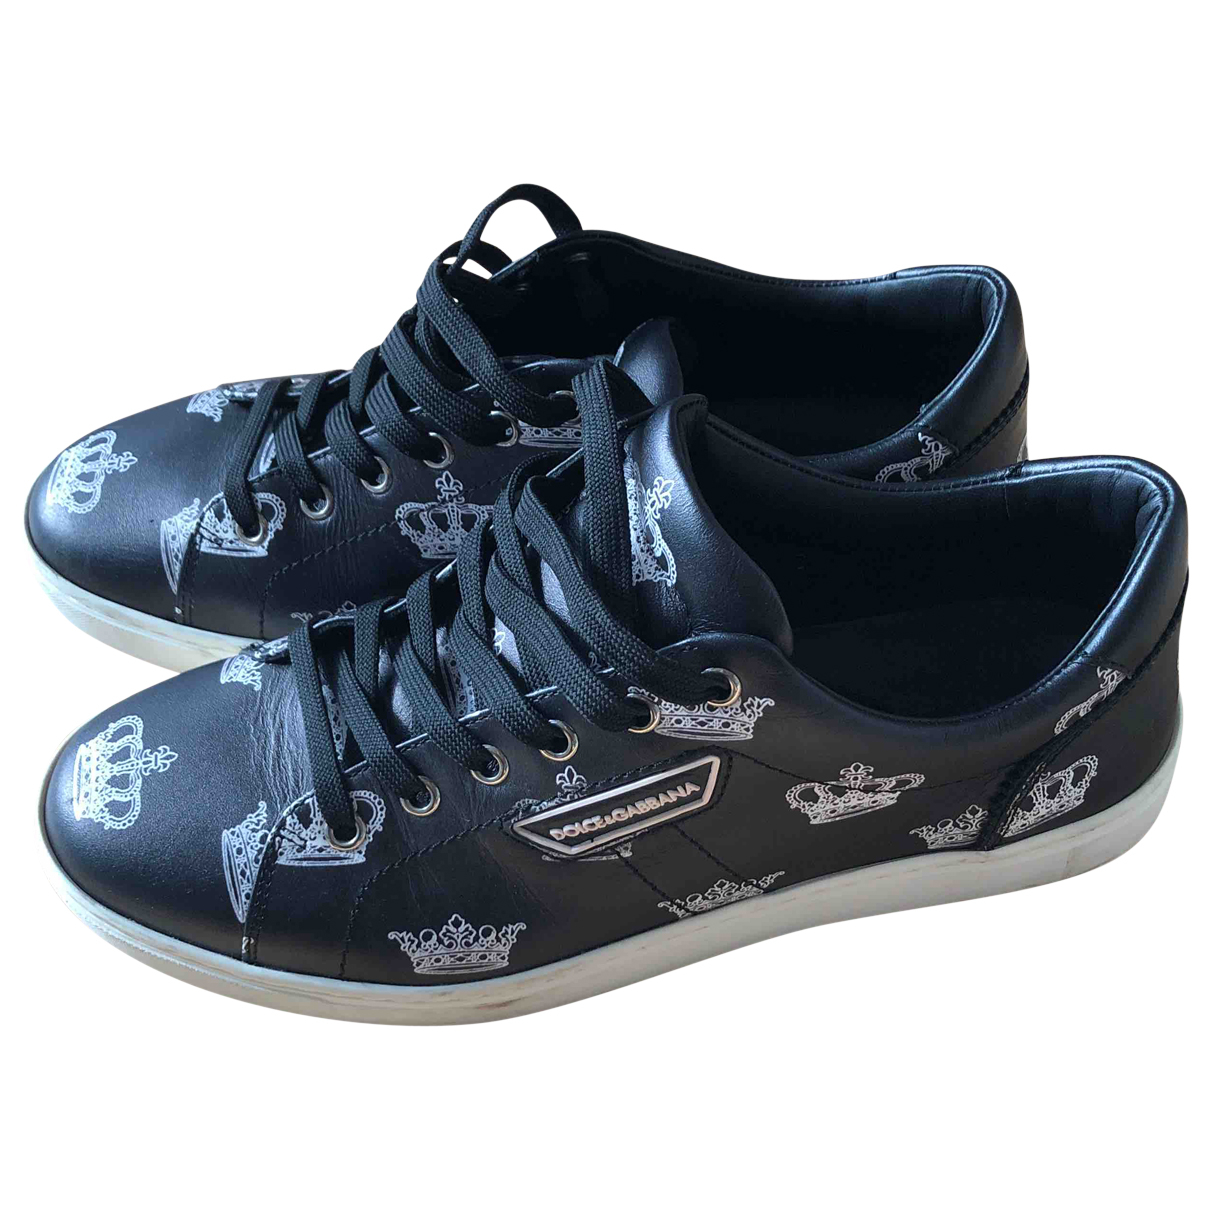 Dolce & Gabbana Roma Black Leather Trainers for Men 41 EU